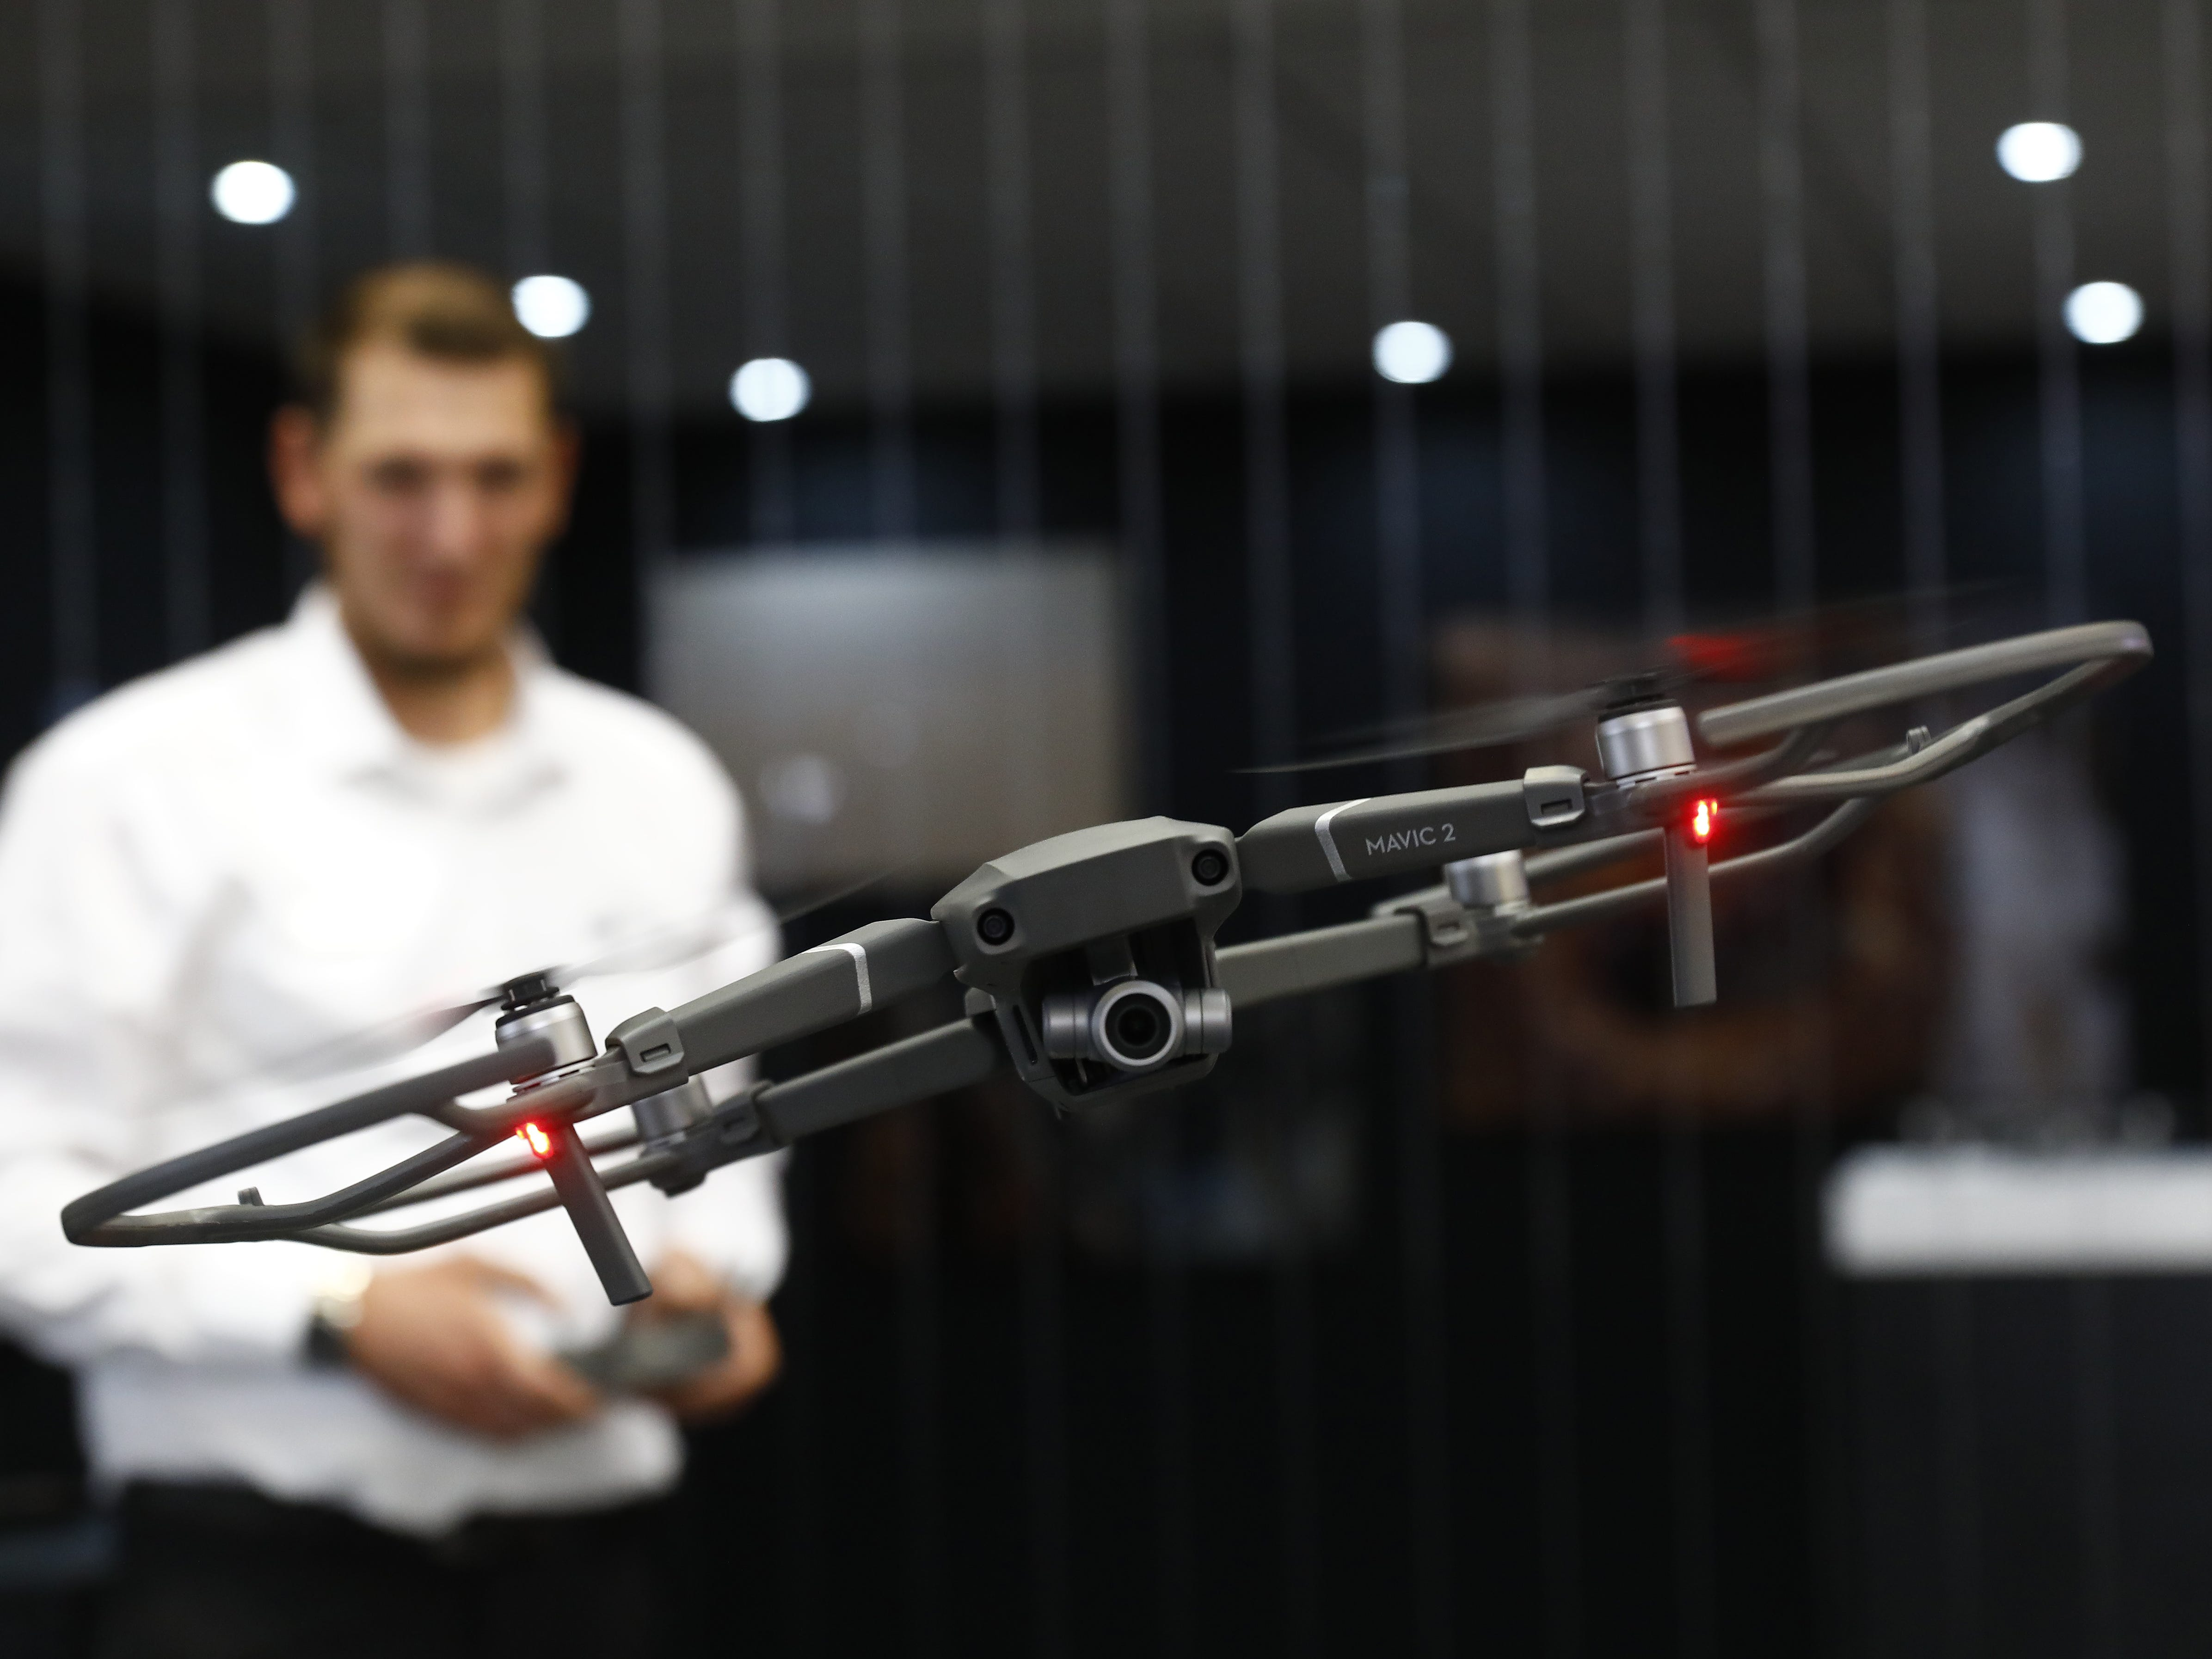 BERLIN, GERMANY - AUGUST 30: A DJI Mavic 2 Drone is shown at the 2018 IFA consumer electronics and home appliances trade fair during the fair's press day on August 30, 2018 in Berlin, Germany. IFA, Europe's biggest tech trade fair, will be open to the public from August 31 through September 5. (Photo by Michele Tantussi/Getty Images) ORG XMIT: 775217025 ORIG FILE ID: 1025253874